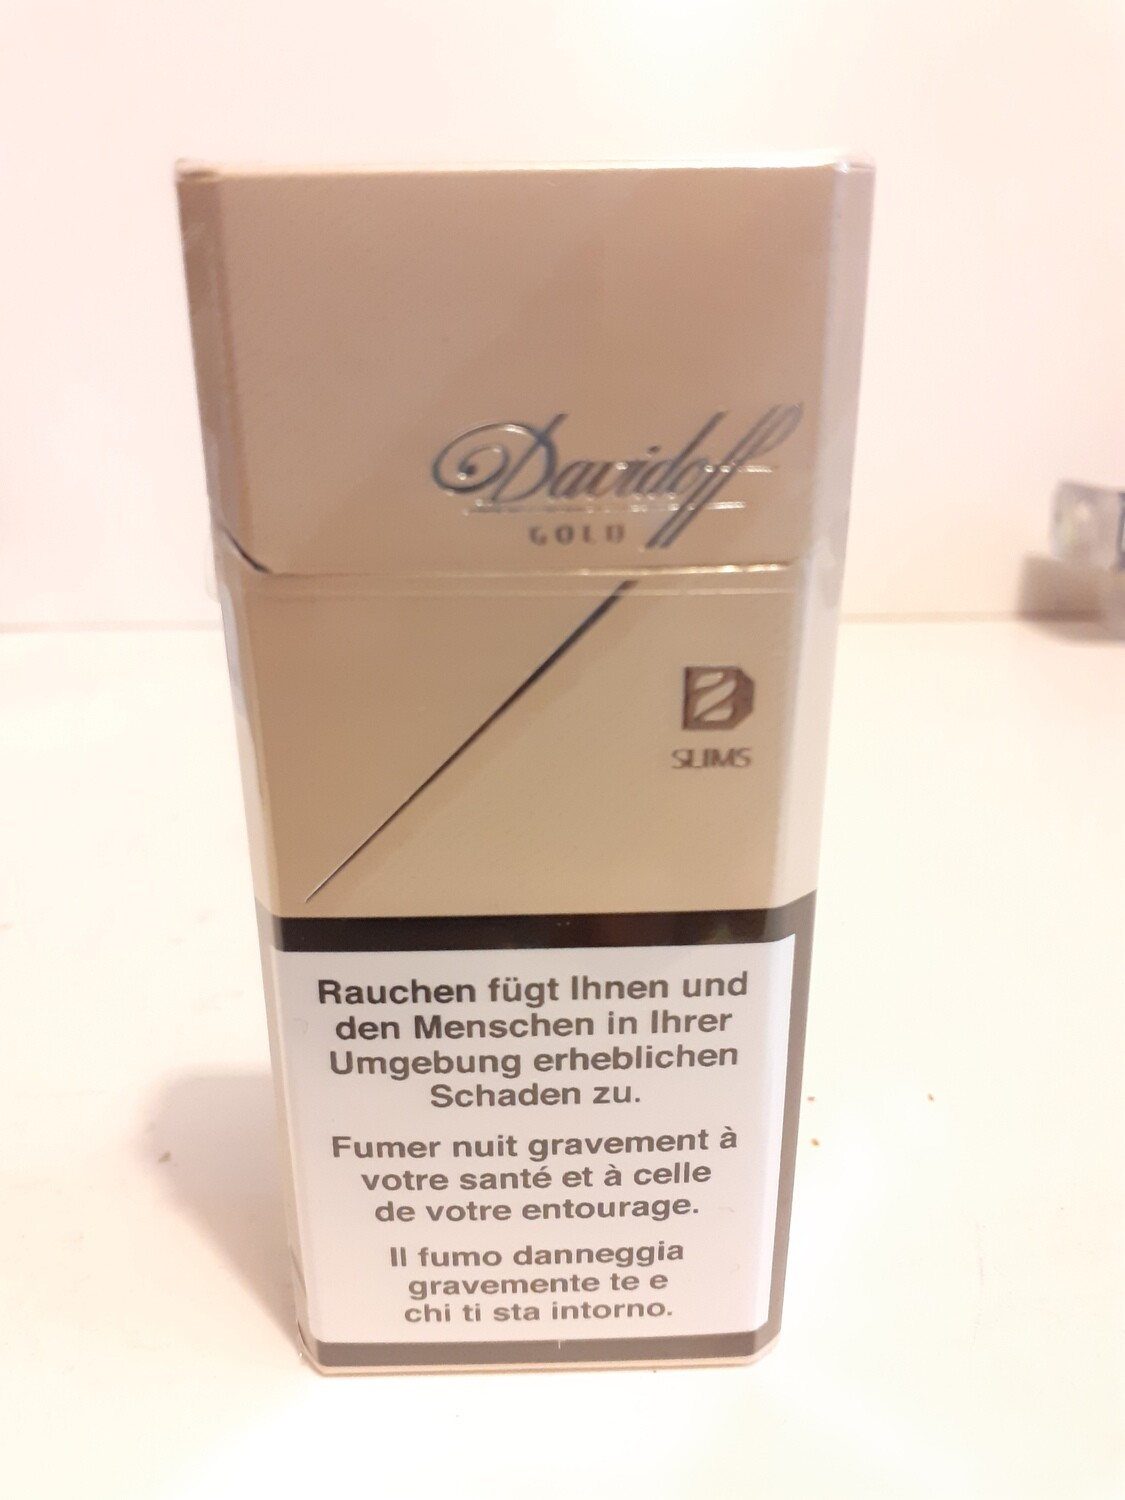 DAVIDOFF Gold Slim